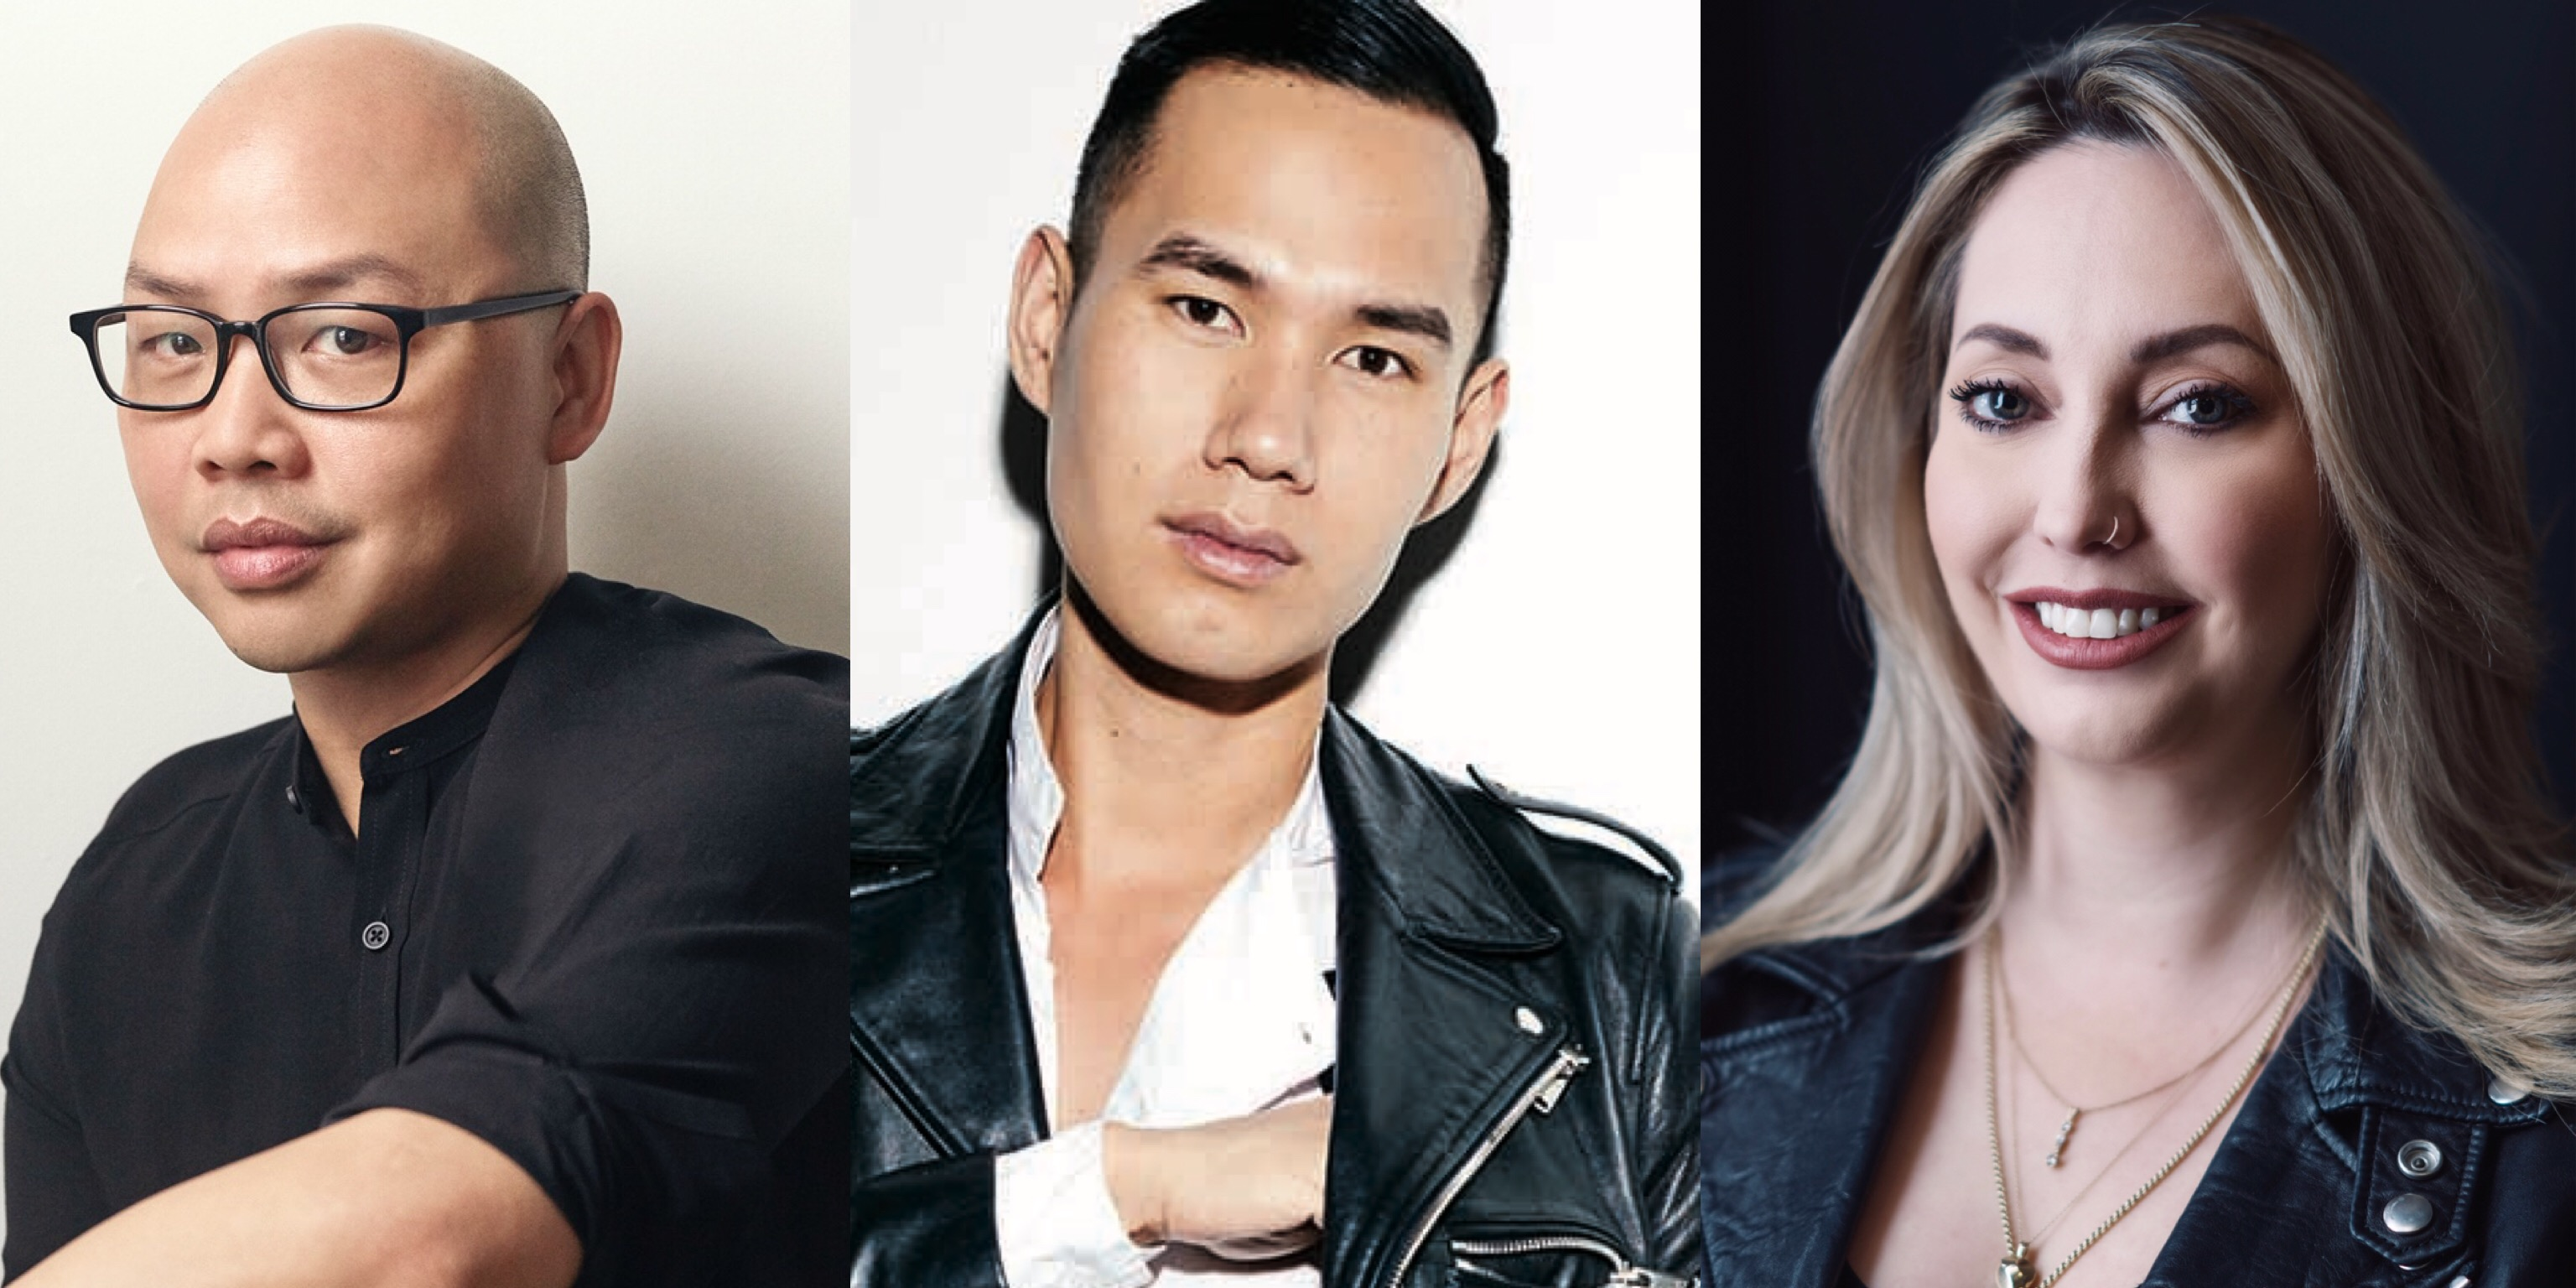 Daniel martin, patrick ta, Sarah Tanno, hollywood beauty awards